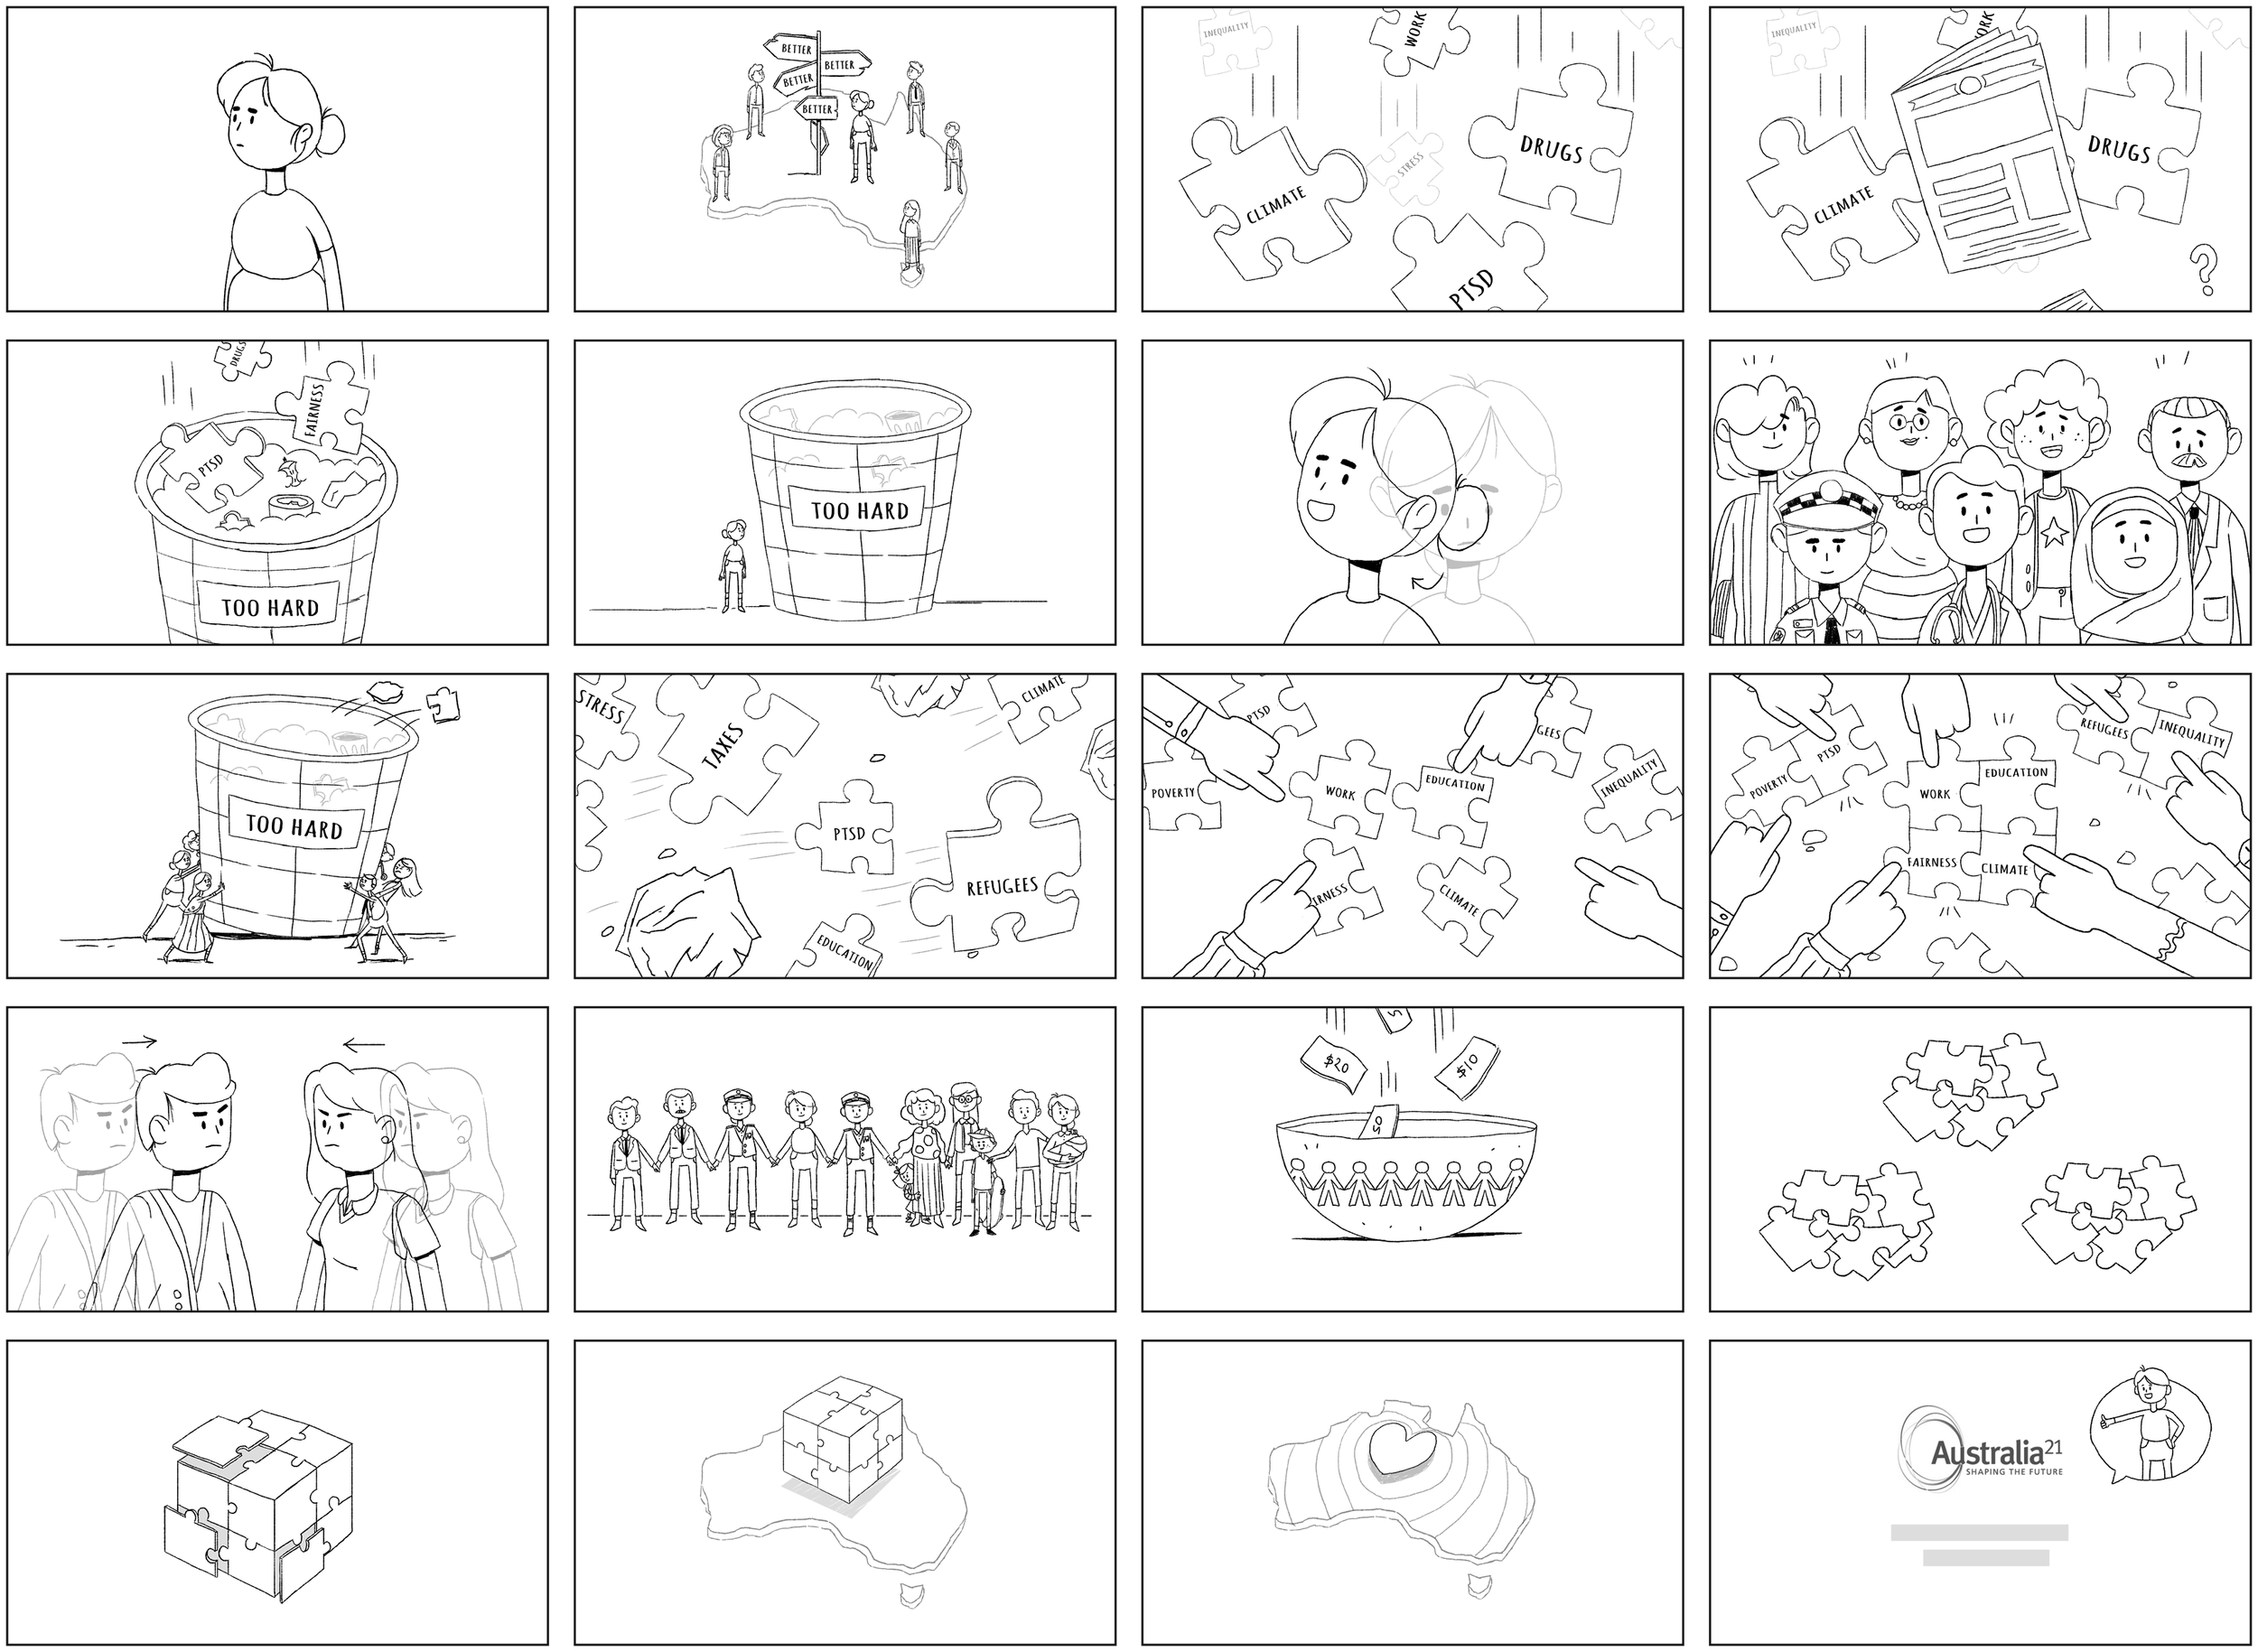 Aus21_Storyboards.png